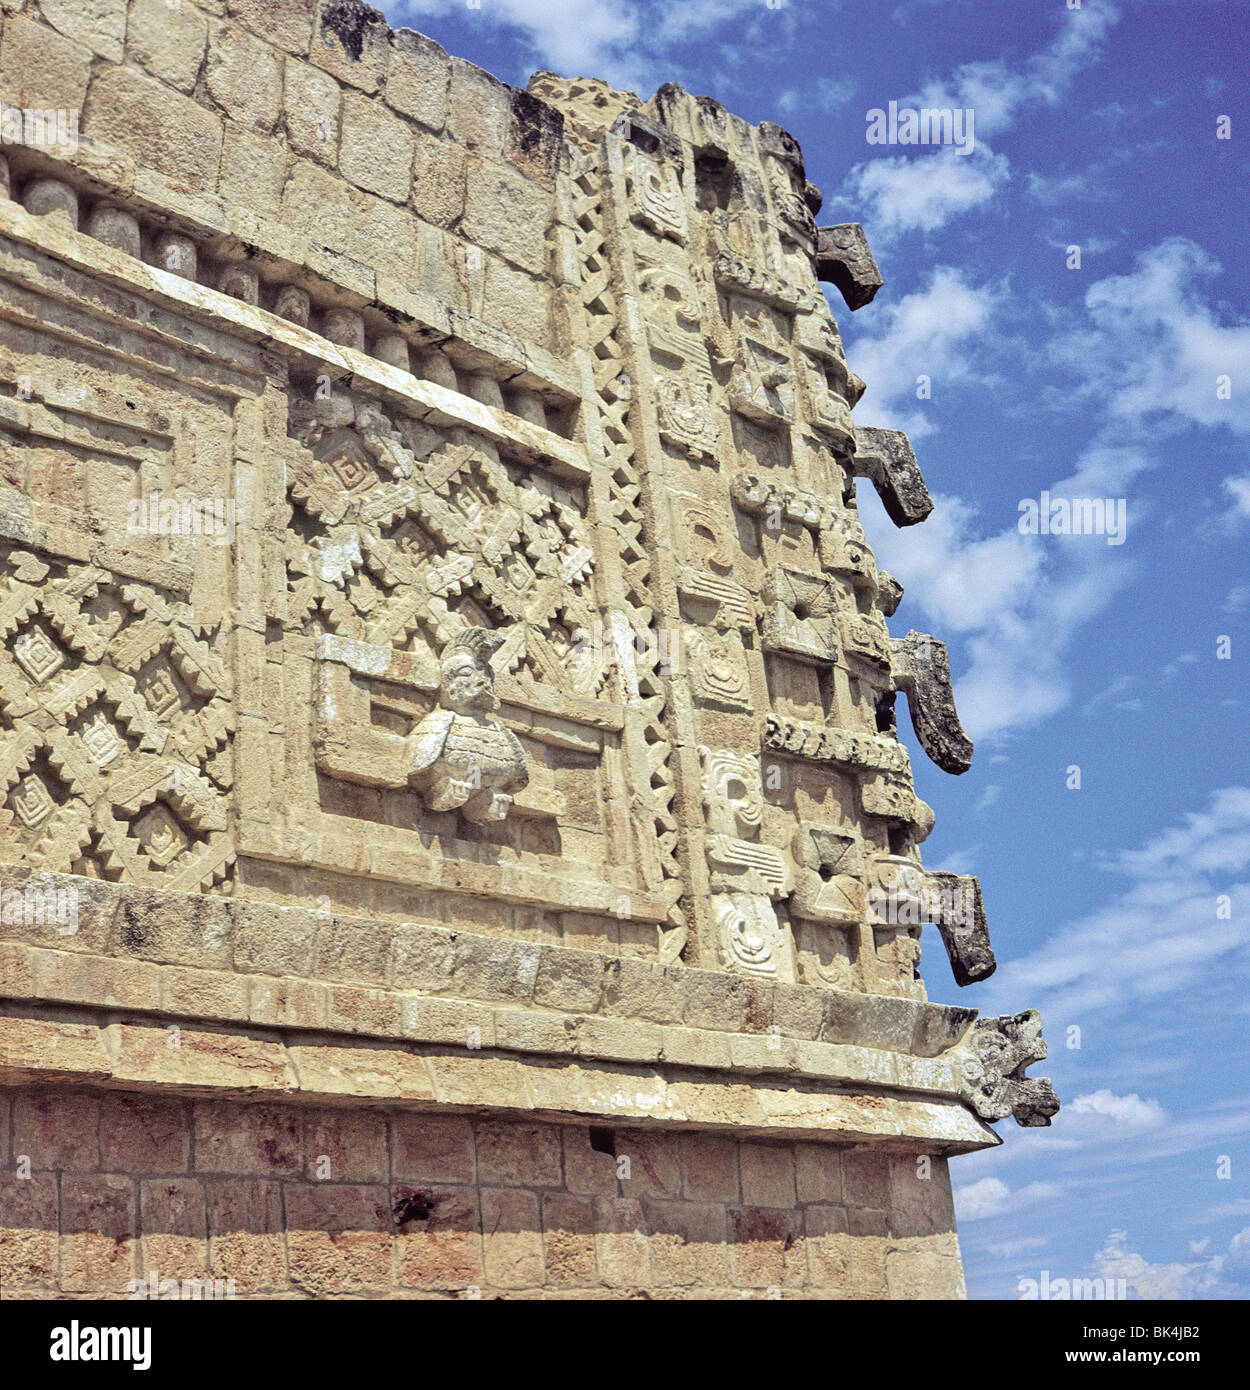 Architecture detail showing a relief sculpture of a human headed bird & a mask column at Nunnery Quadrangle in Uxmal Stock Photo